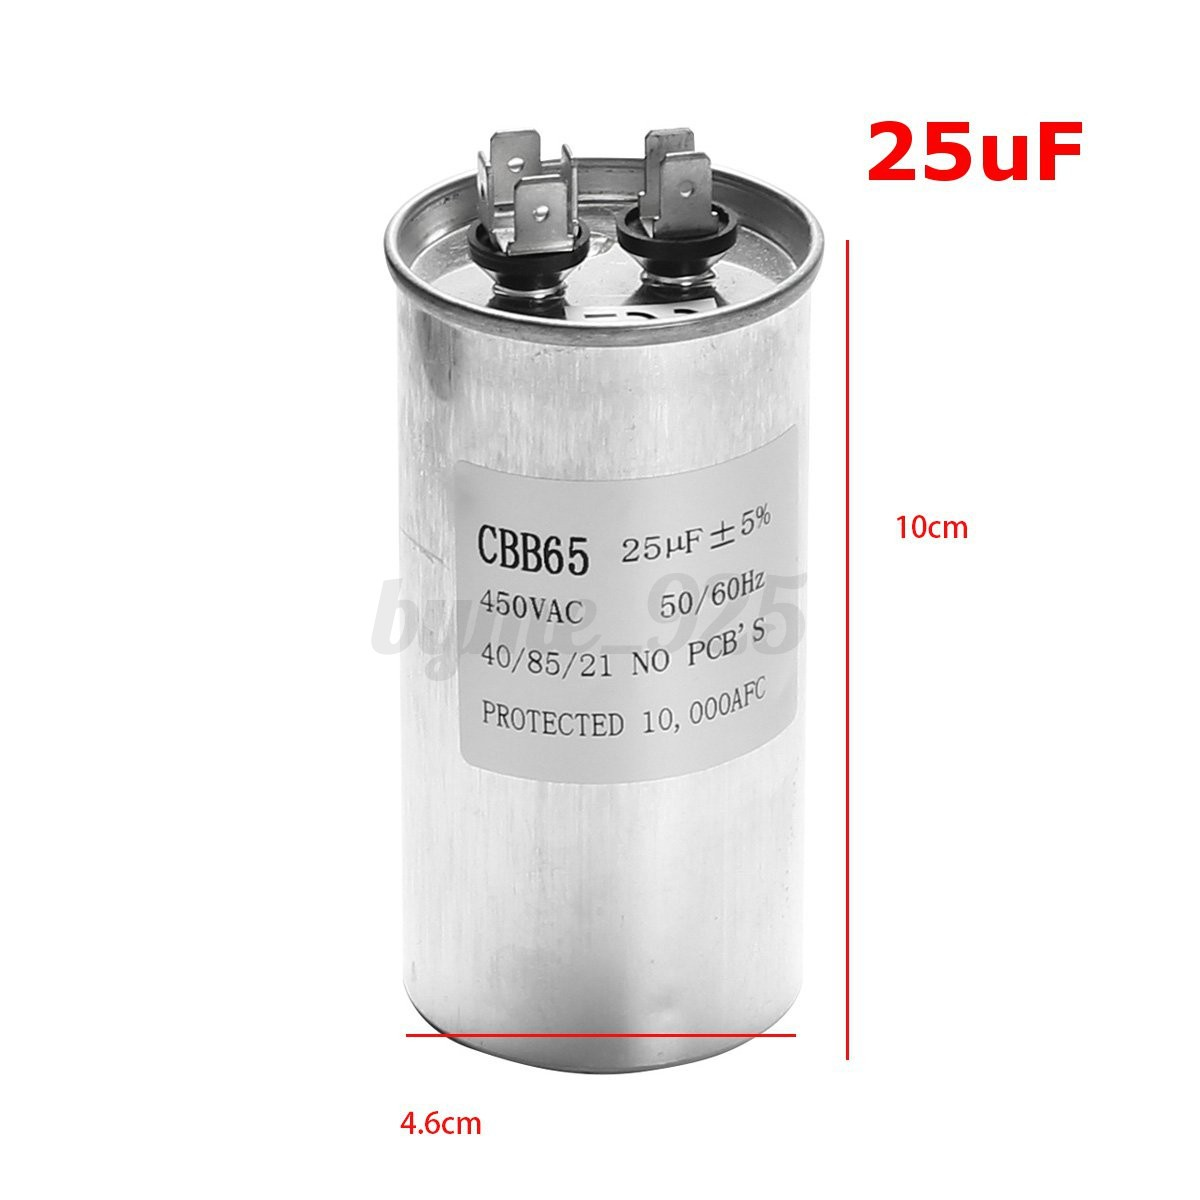 Cbb65 15 50uf ac 450v 50 60hz start motor capacitor air for Air conditioner compressor motor